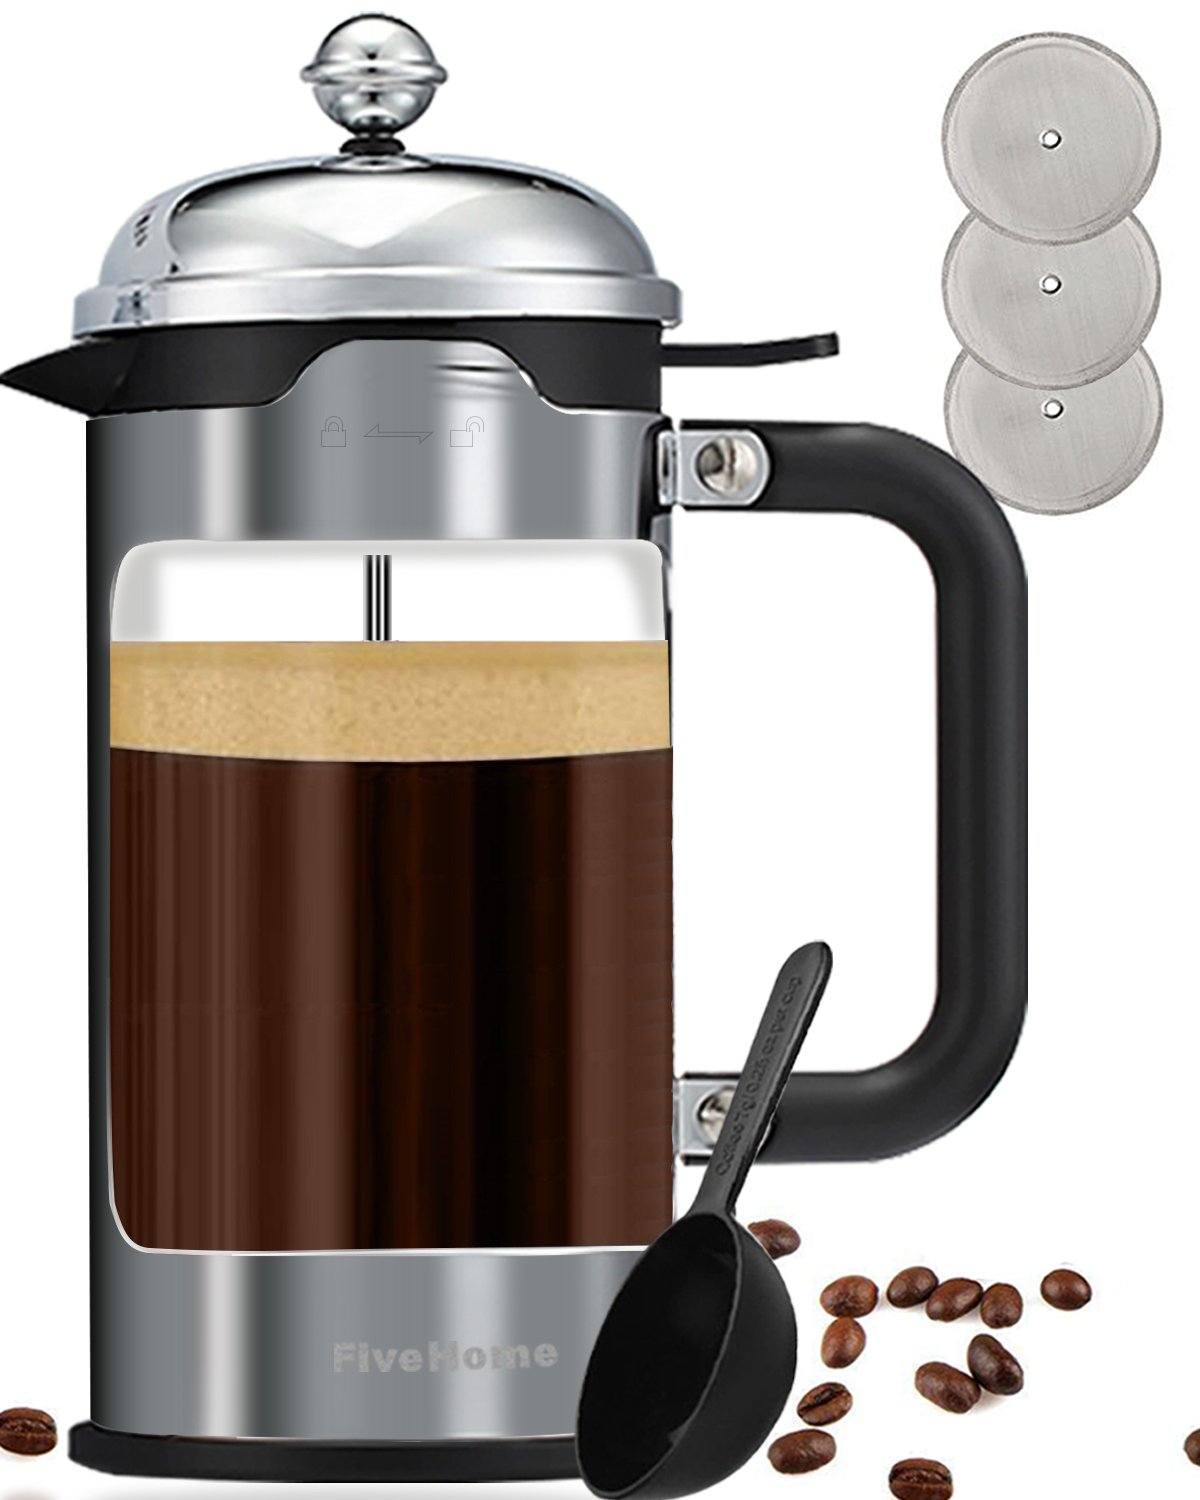 French Press Coffee Maker (1 L/34 oz), FiveHome Luxury Coffee & Tea Makers with 304 Grade Stainless Steel,Heat Resistant Borosilicate Glass,4 Bonus Filter Screen (Platinum) P1